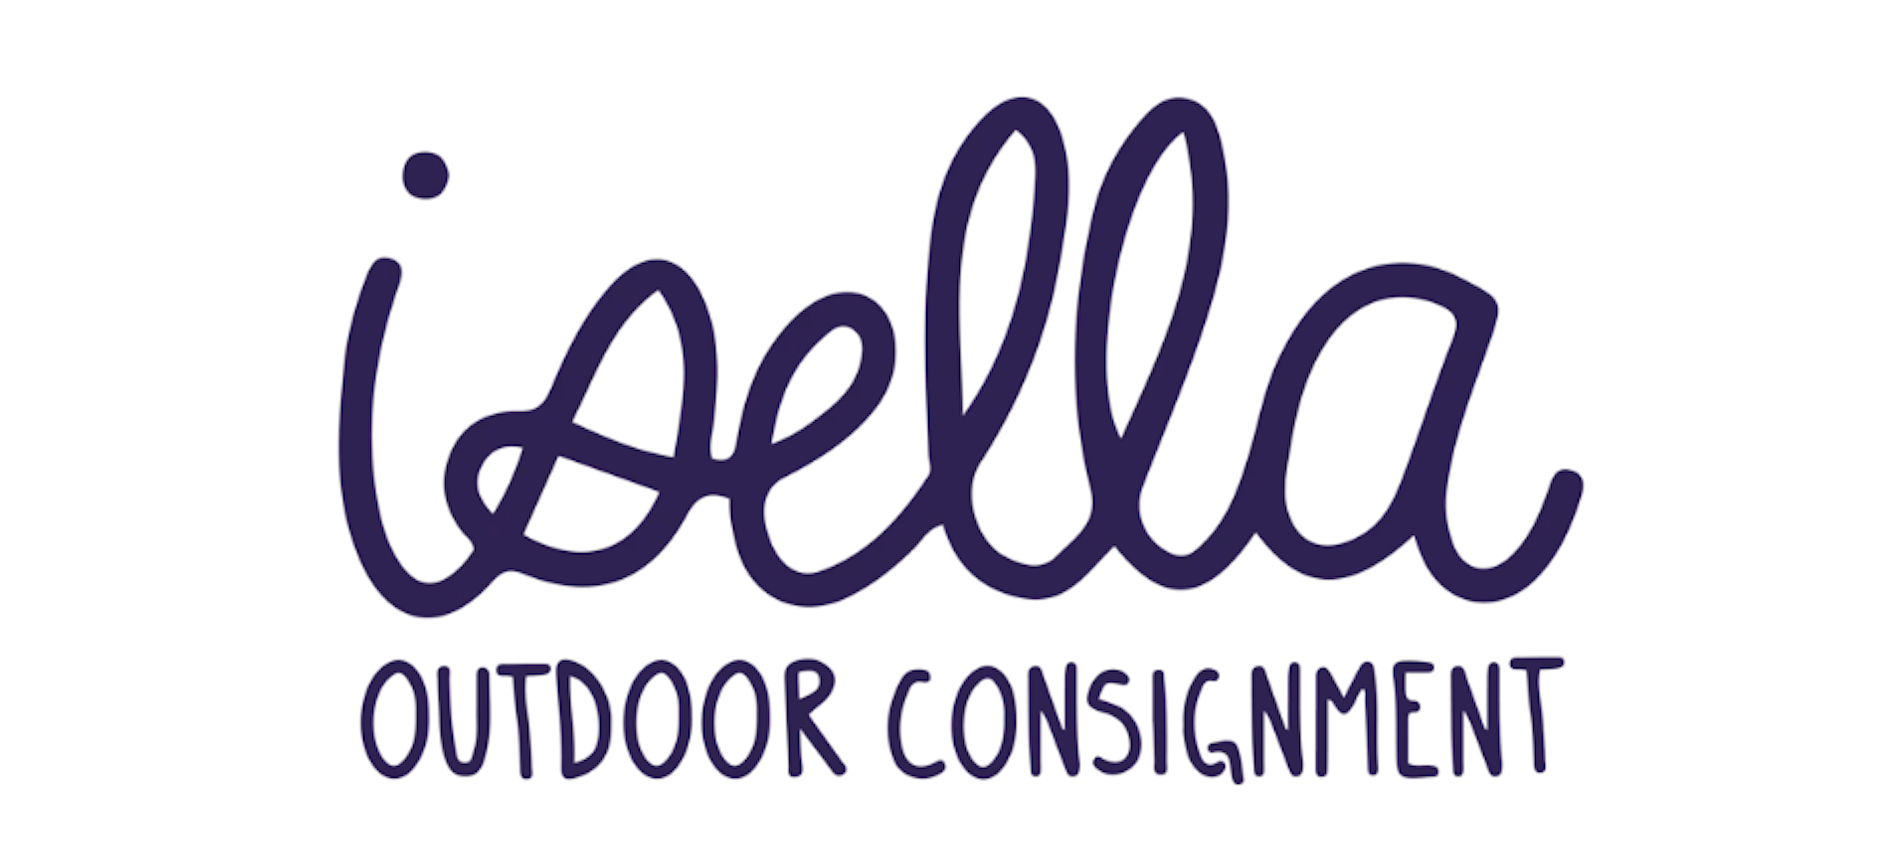 isella outdoor gear consignment